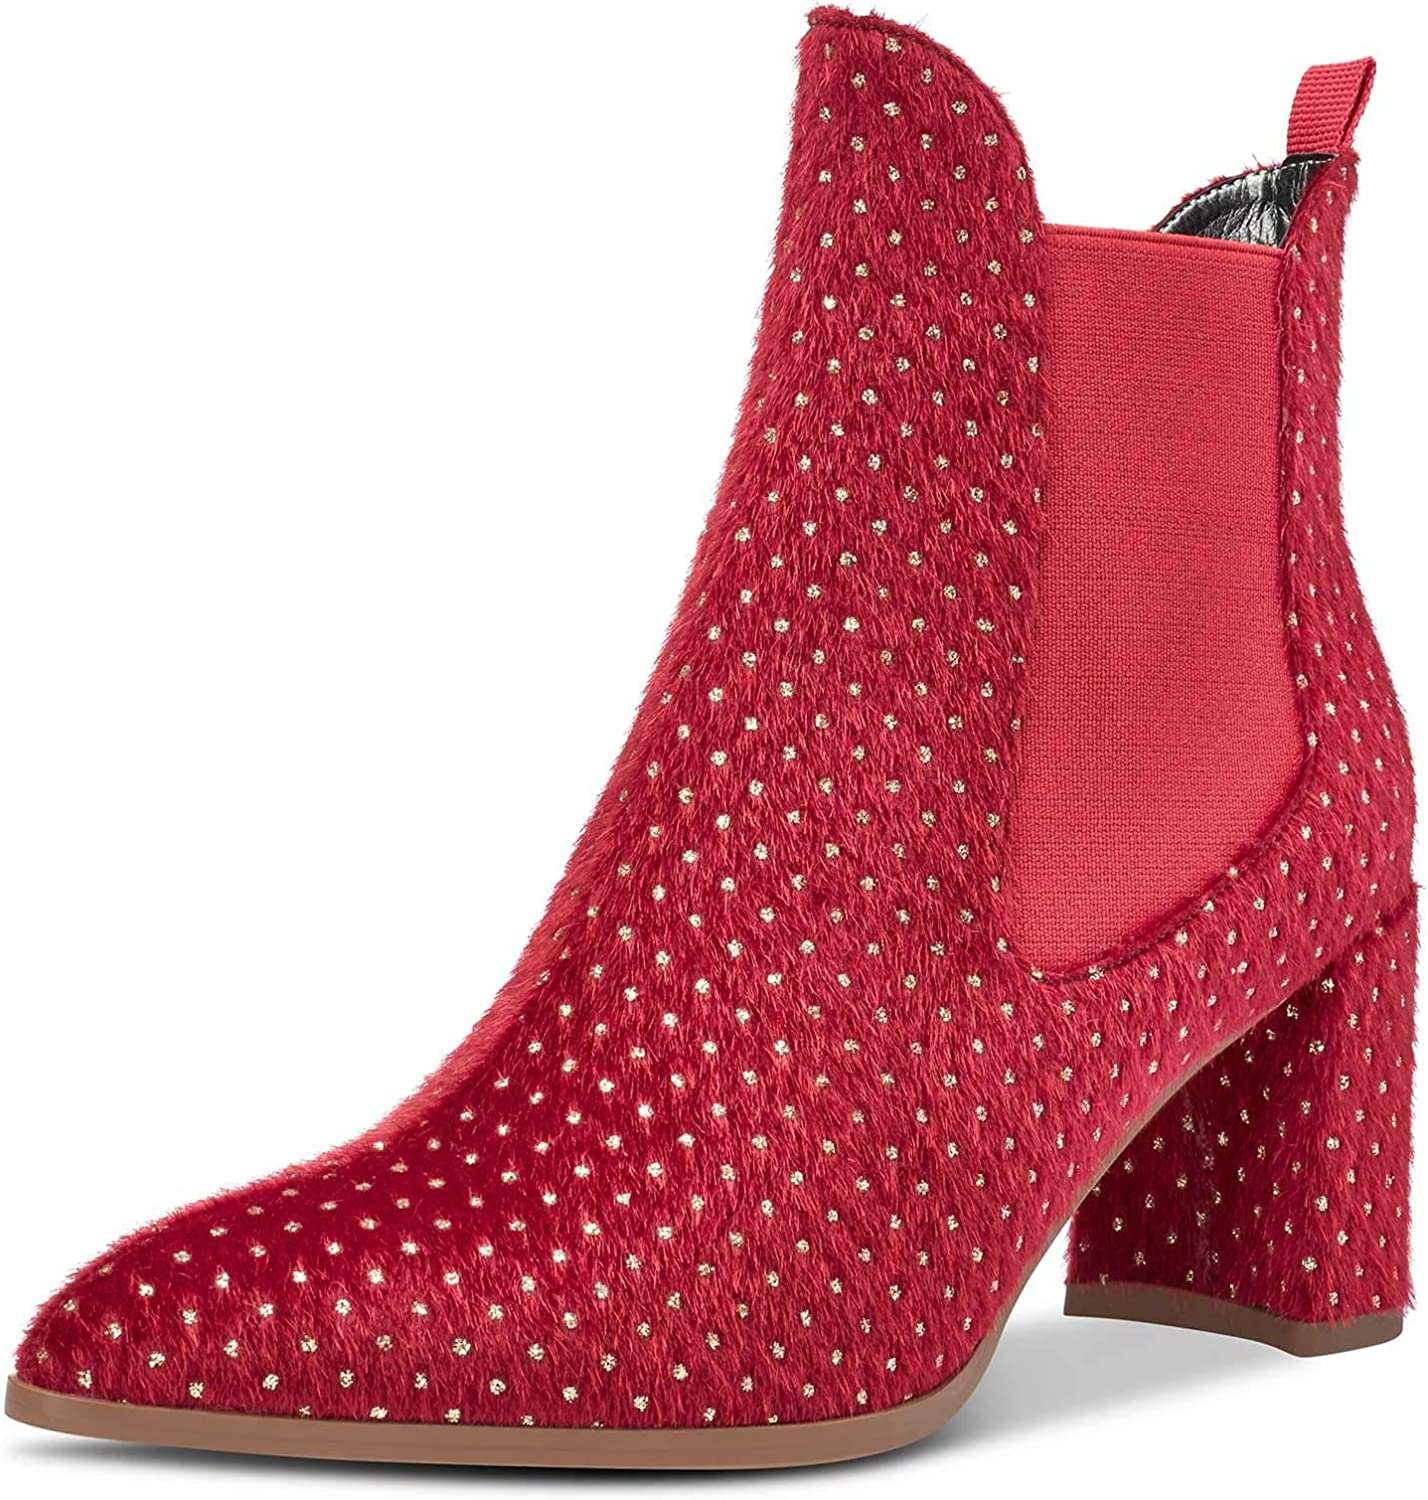 CASTAMERE Women's Chunky Block Heels Chelsea Boots Mid Heel Ankle Slip-on Pointed Toe Stretch Bootie 10CM Boot